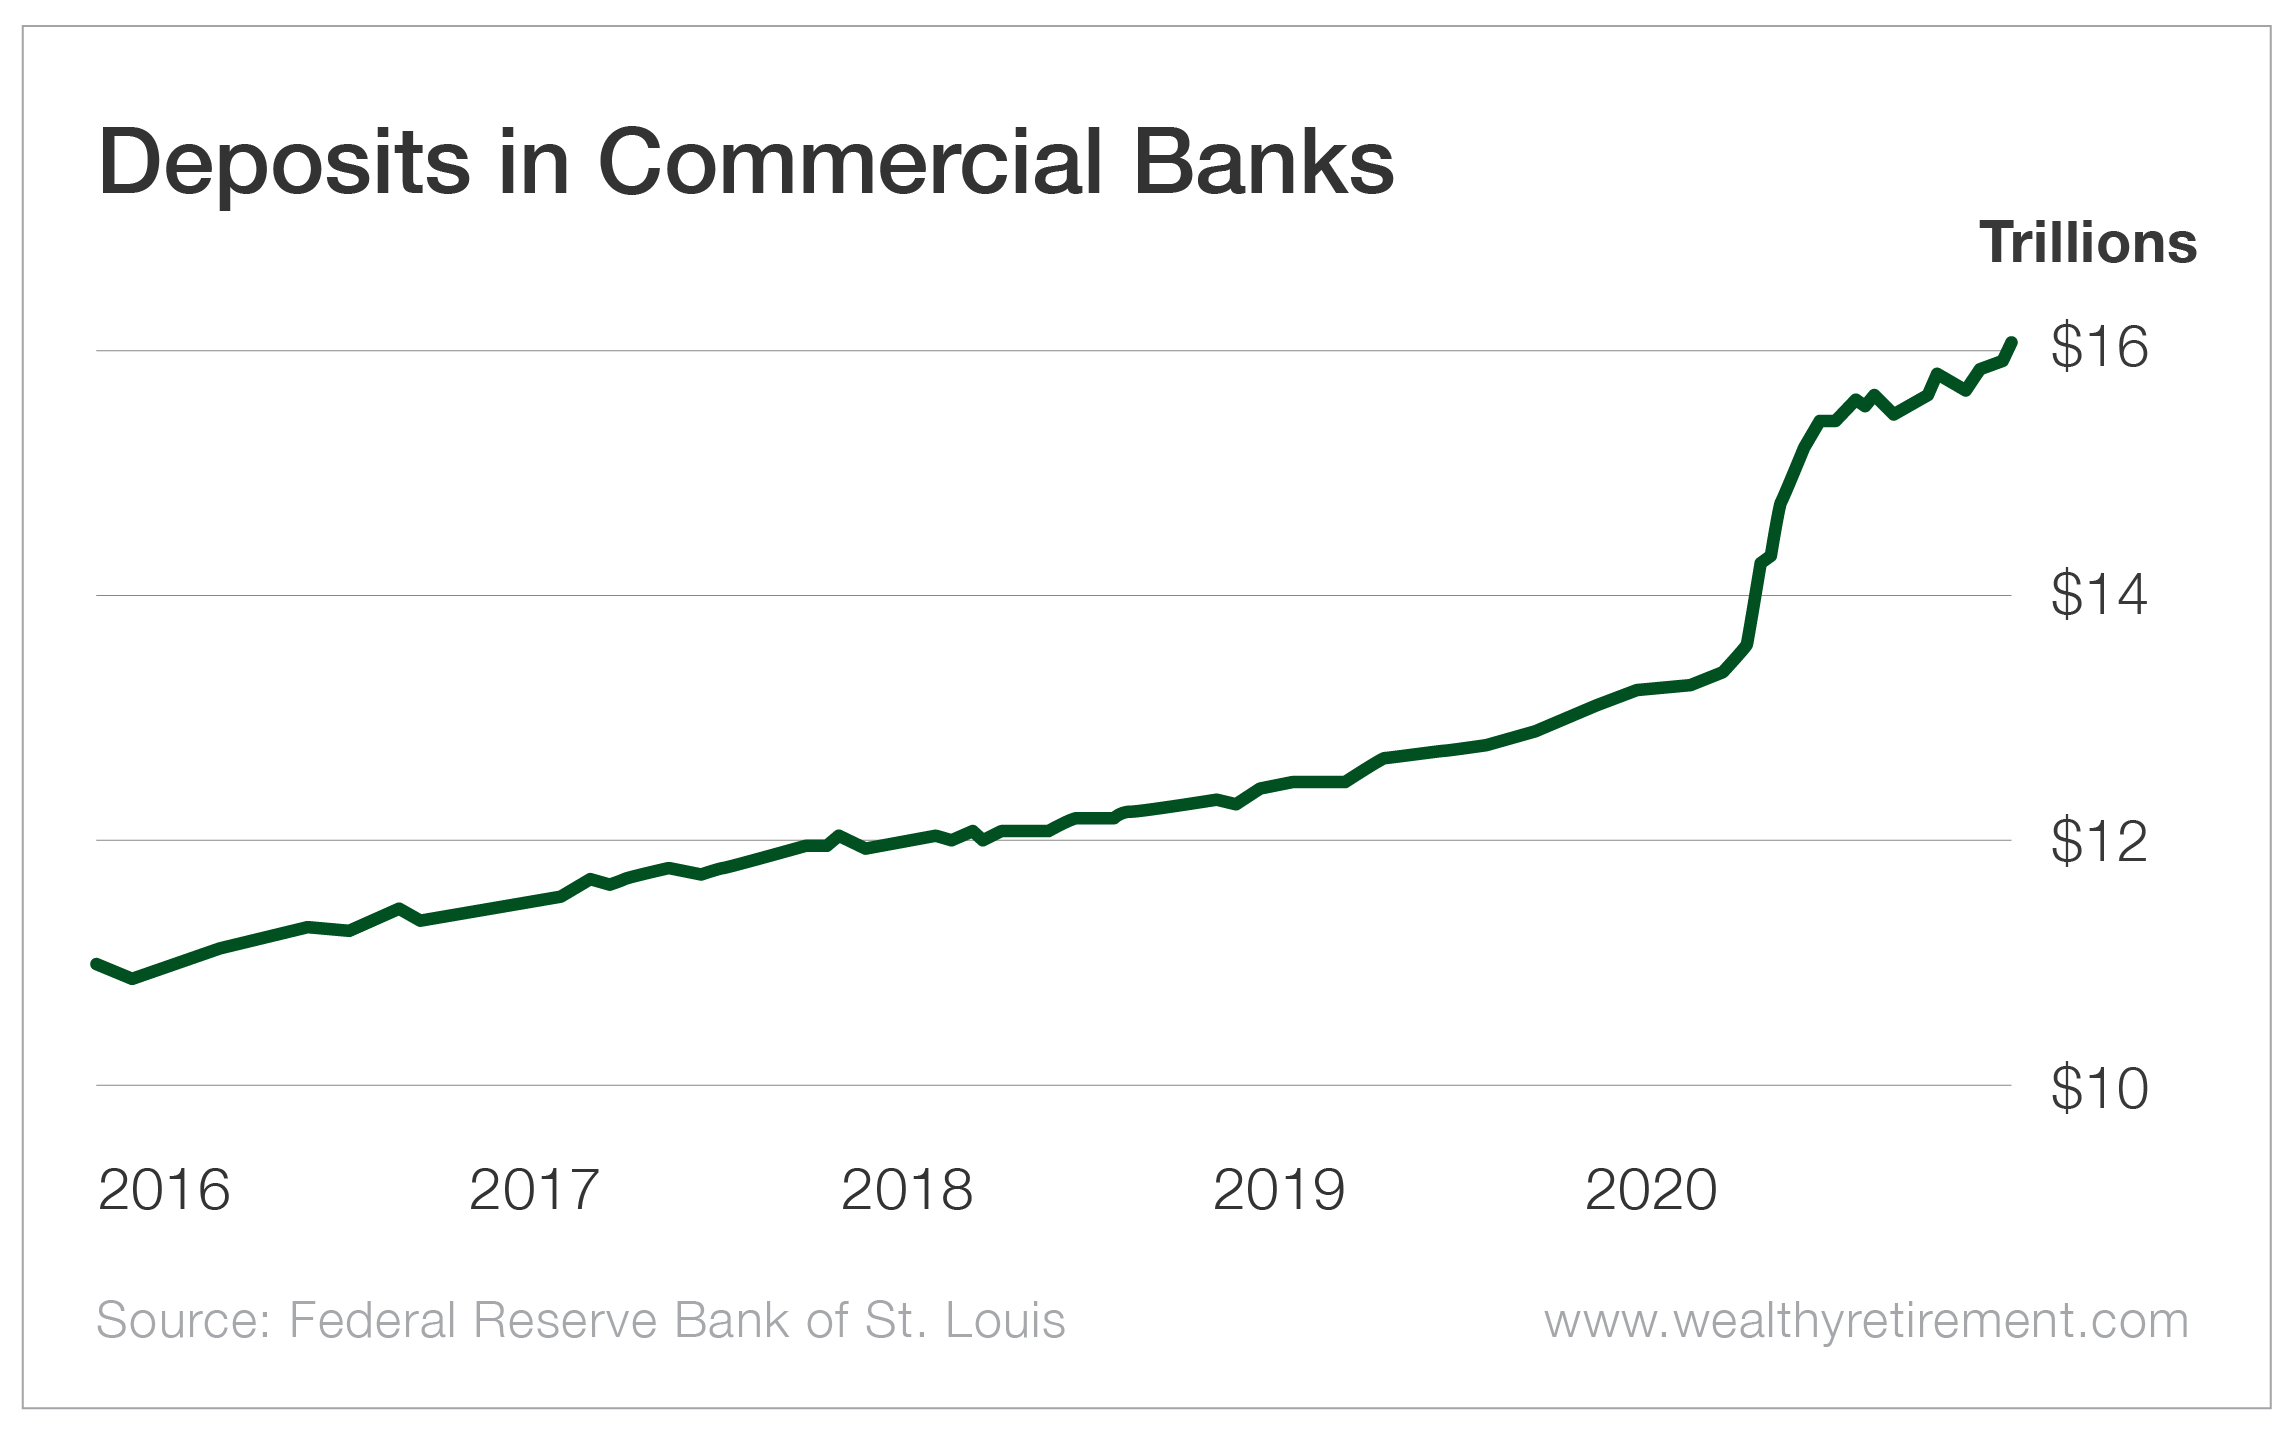 Deposits in Commercial Banks